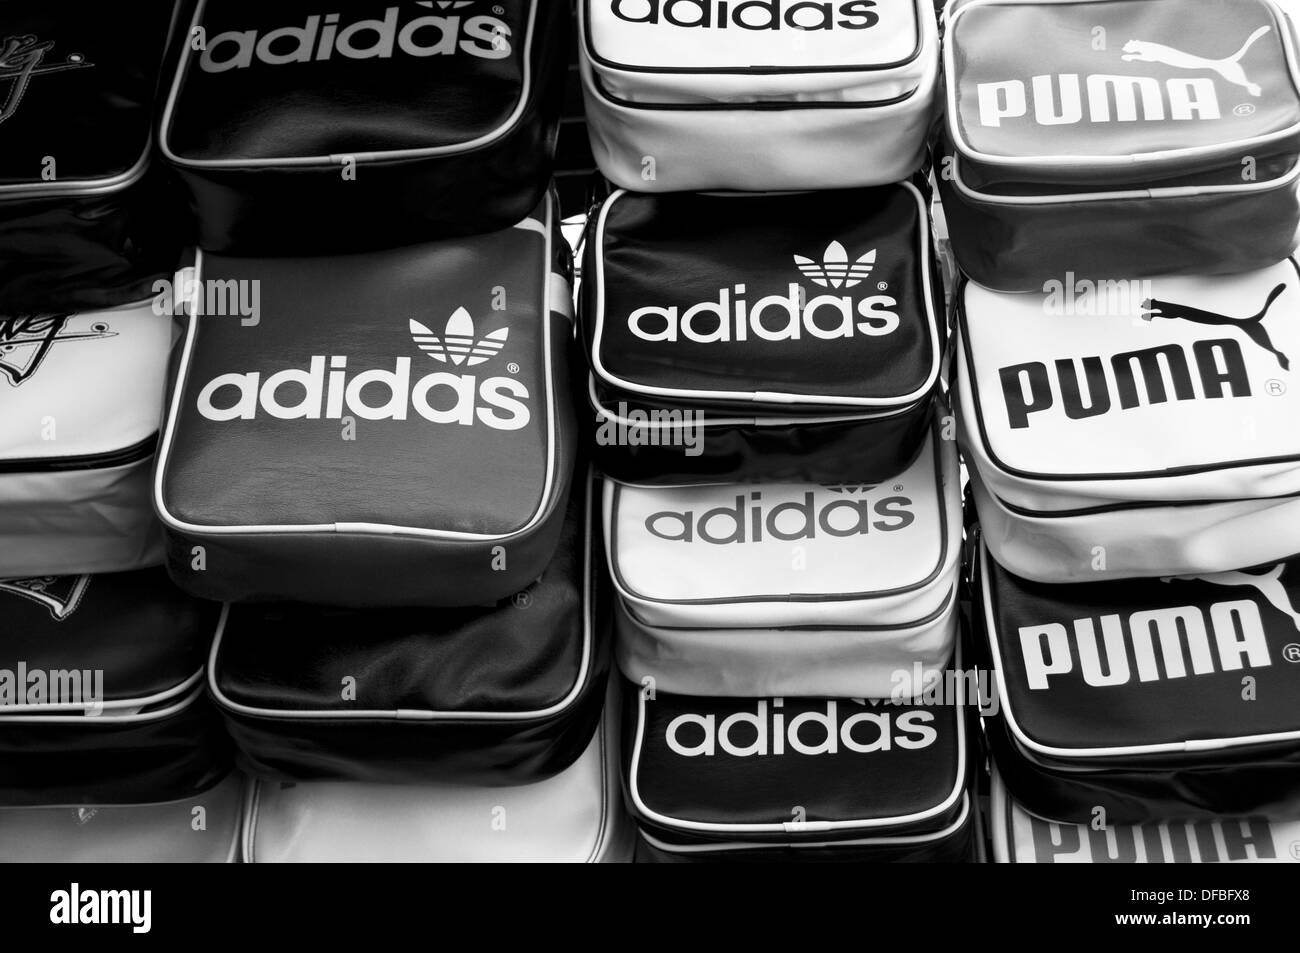 Fake Adidas and Puma sports bags at a market in Bangkok - Stock Image